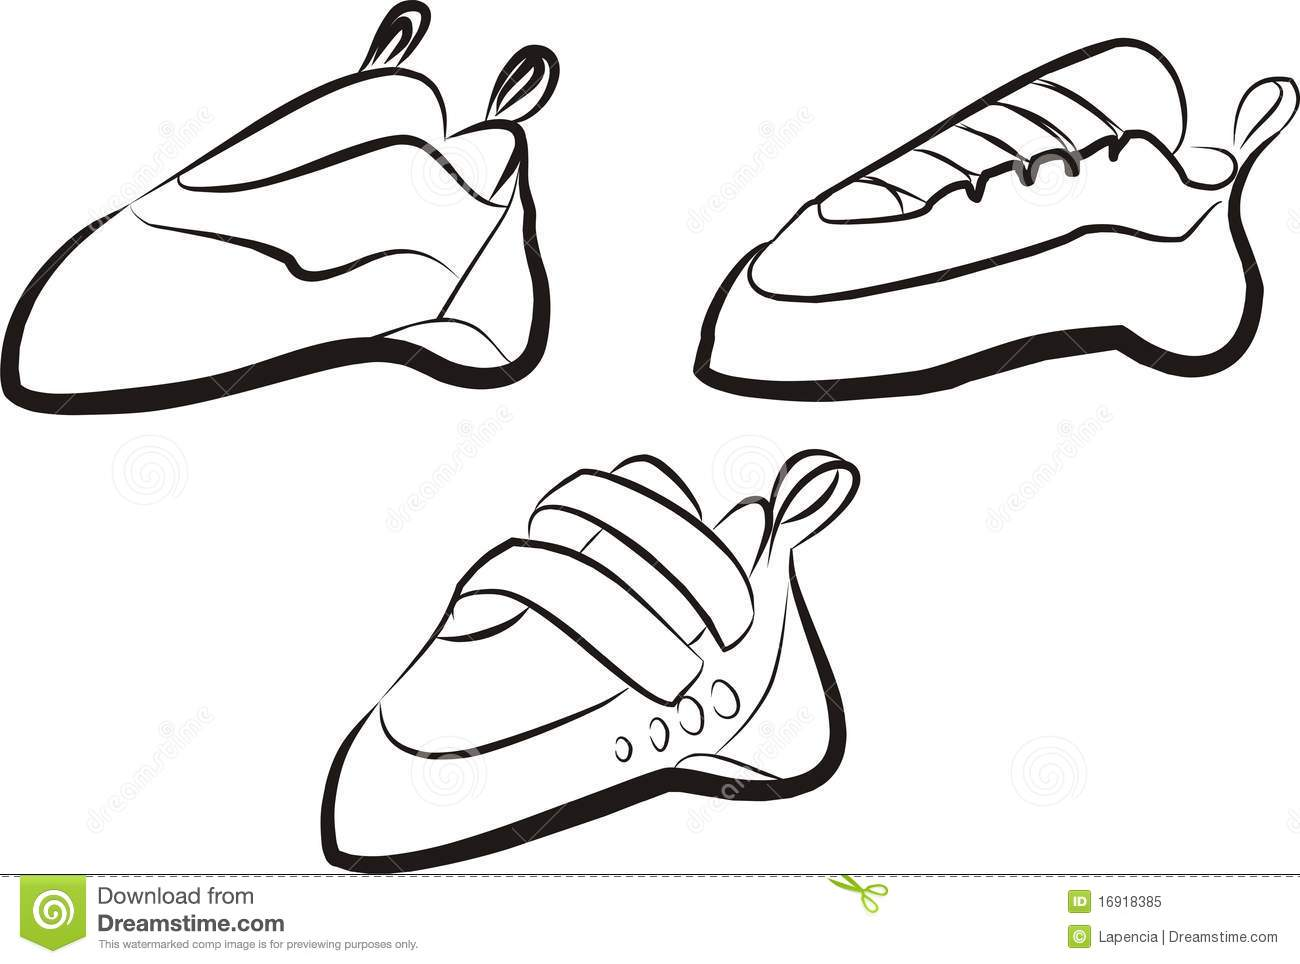 hot sale online c6263 d0060 Illustration De Vecteur Du S élevantes Chaussures F5qTvv